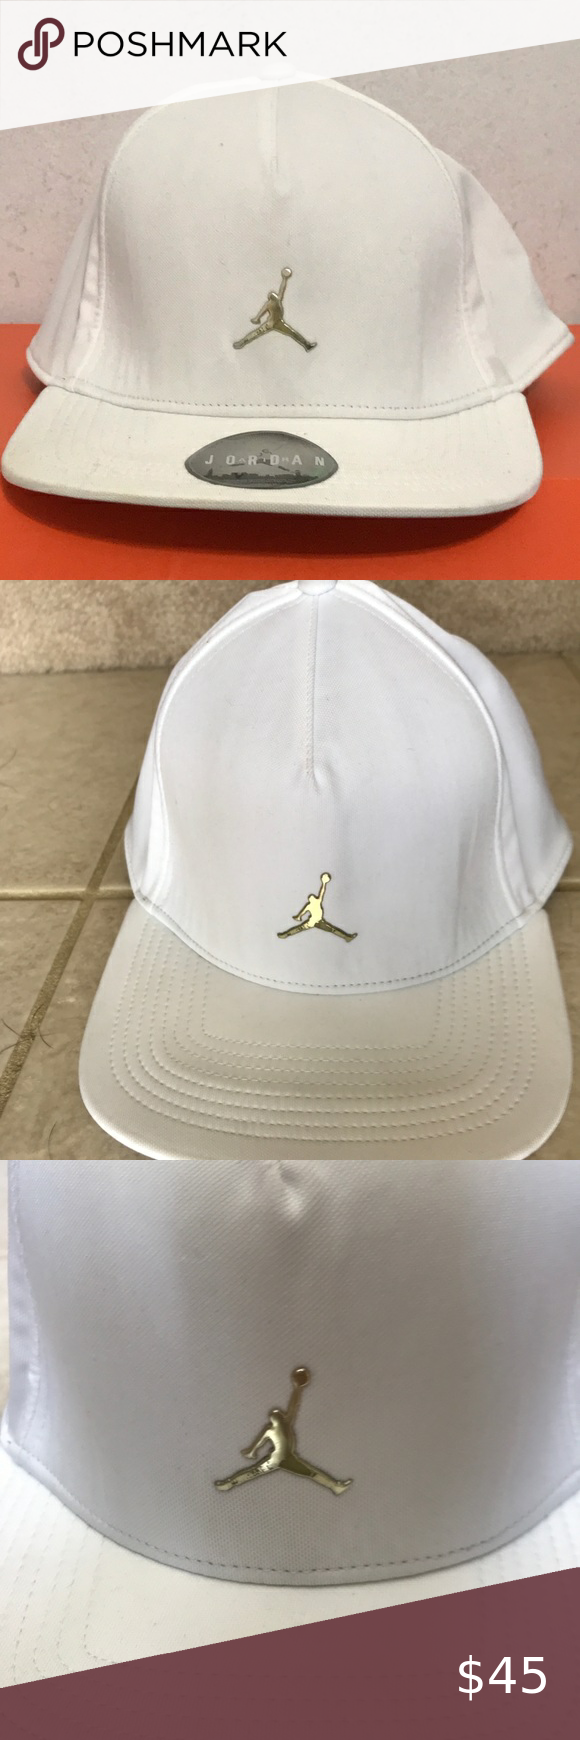 Jordan X Ovo White Hat Used Os I M Reposting This I Found The Sticker That I Took Off To Clean It Not Sure If T Jordans For Men White Hat Accessories